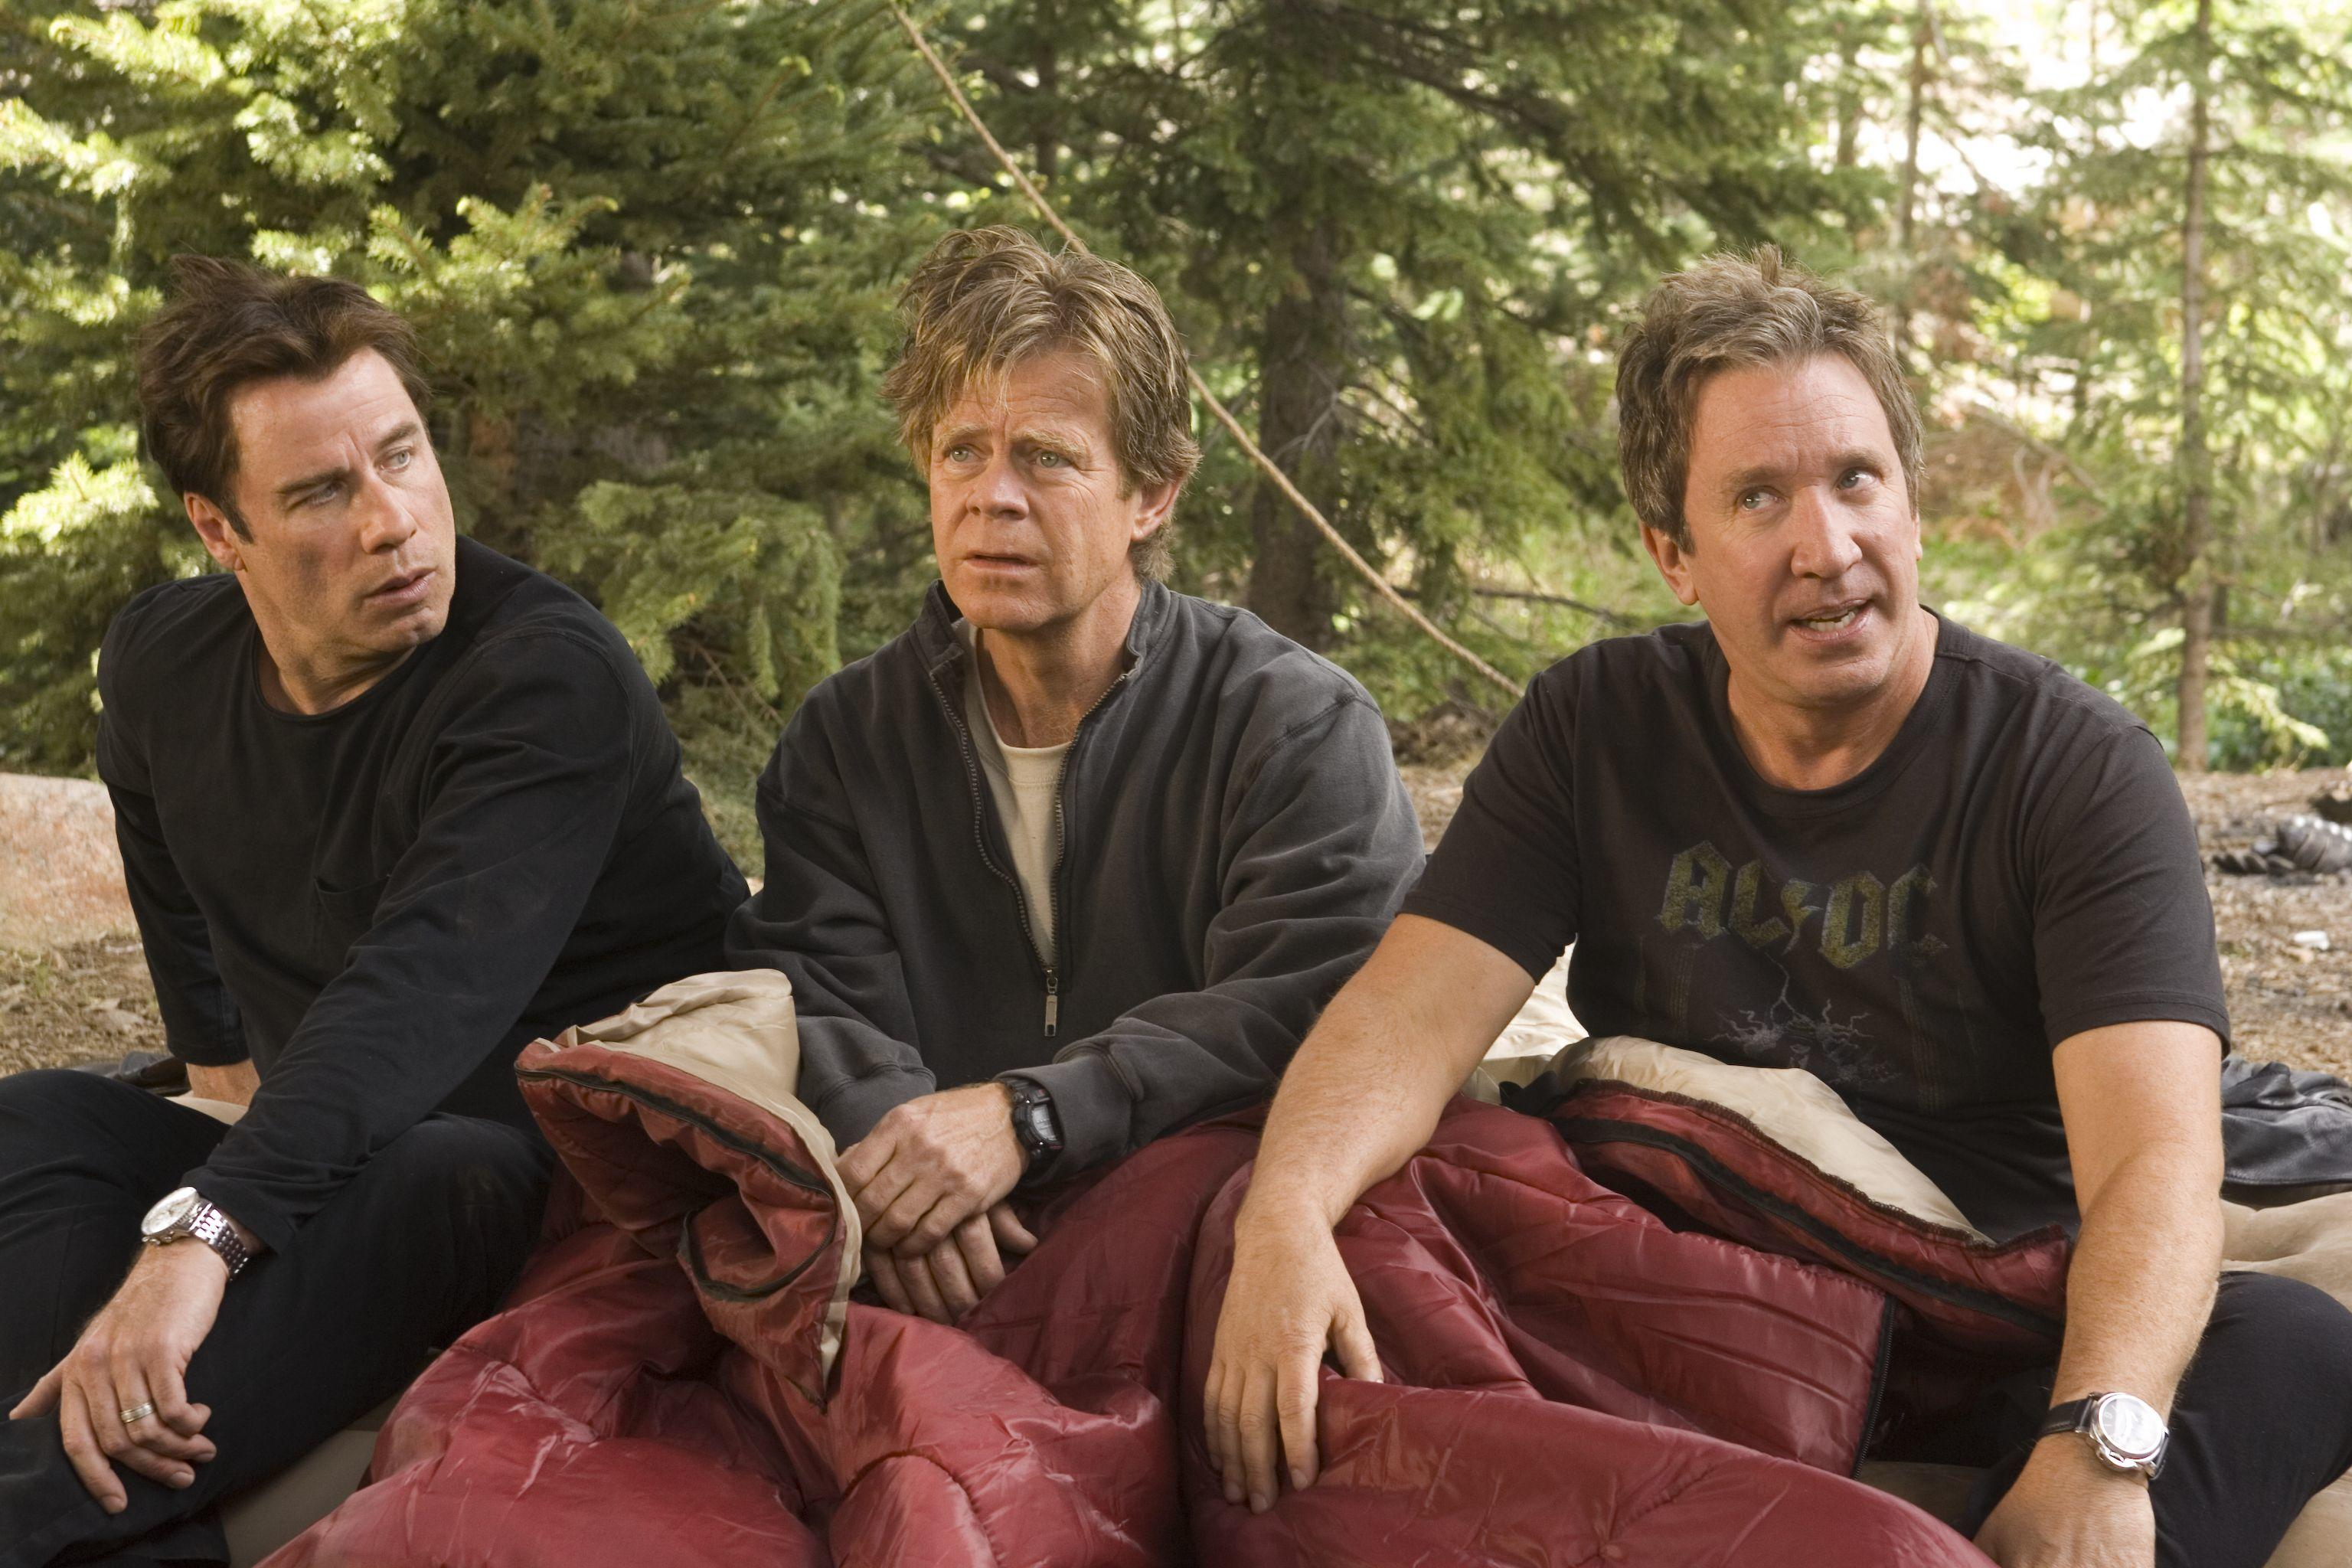 John Travolta, William H. Macy and Tim Allen in